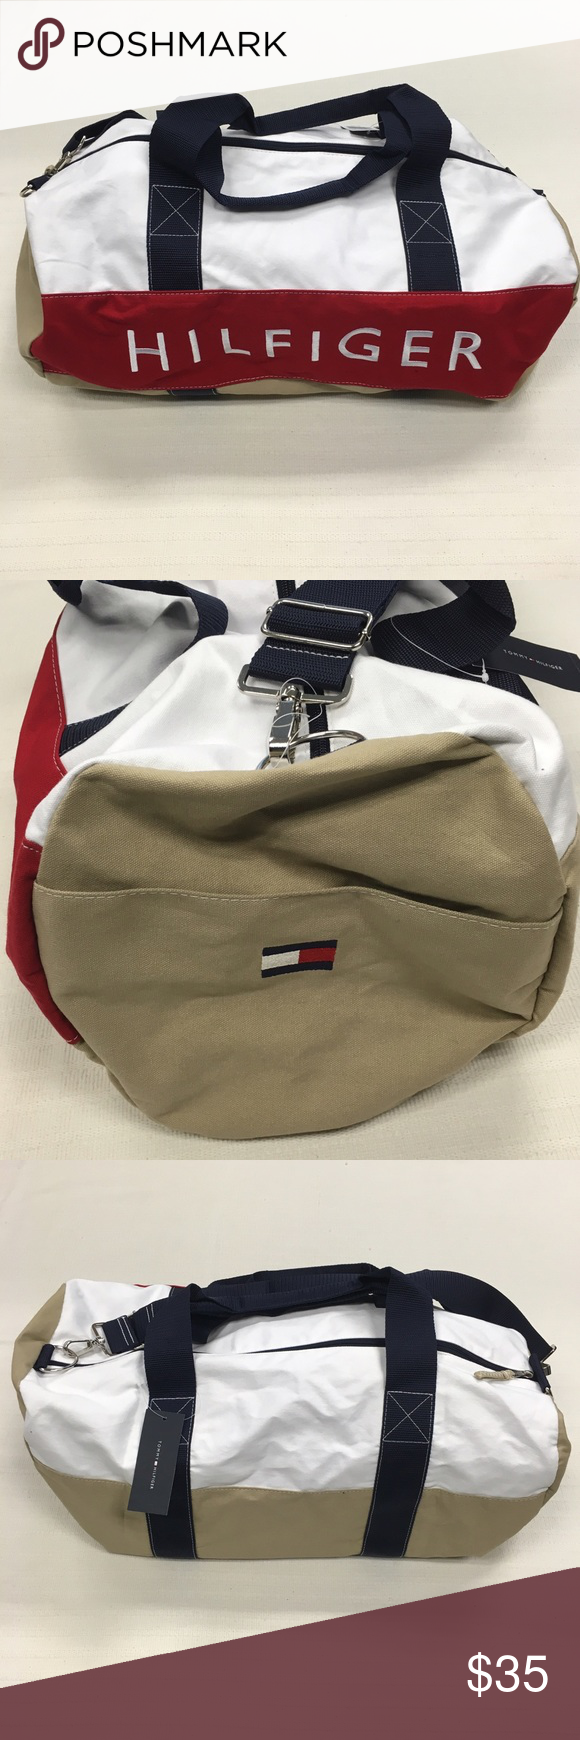 8ec90d8f Tommy Hilfiger USA Harbour Point Duffle Bag Tommy Hilfiger USA Harbour  Point Duffle Bag Style/